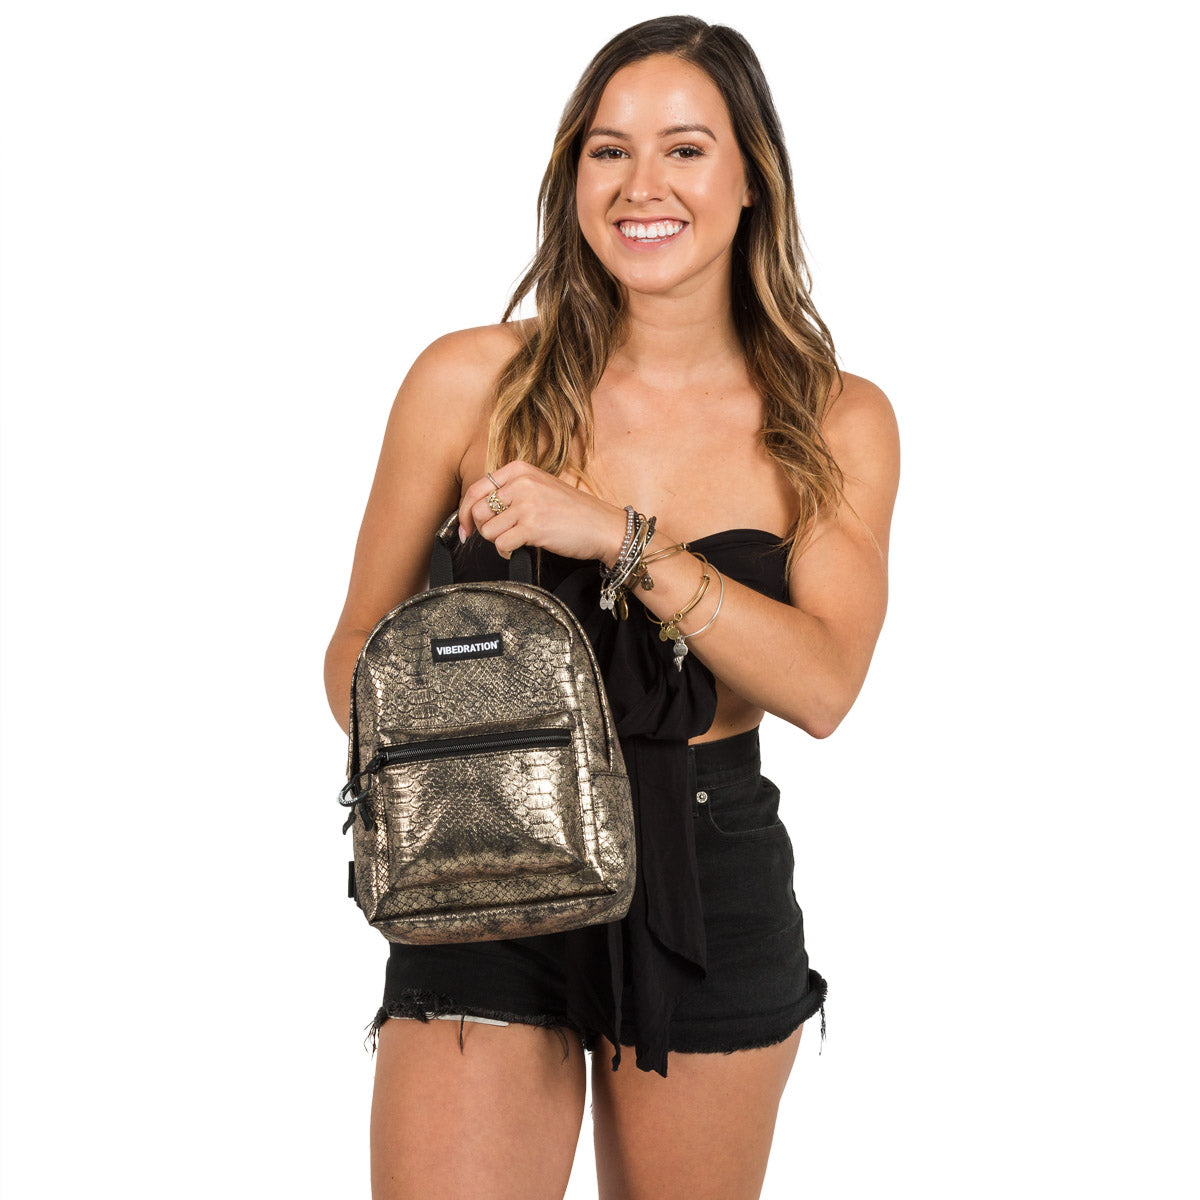 Vibedration New Mini Backpack for Coachella Music Festival